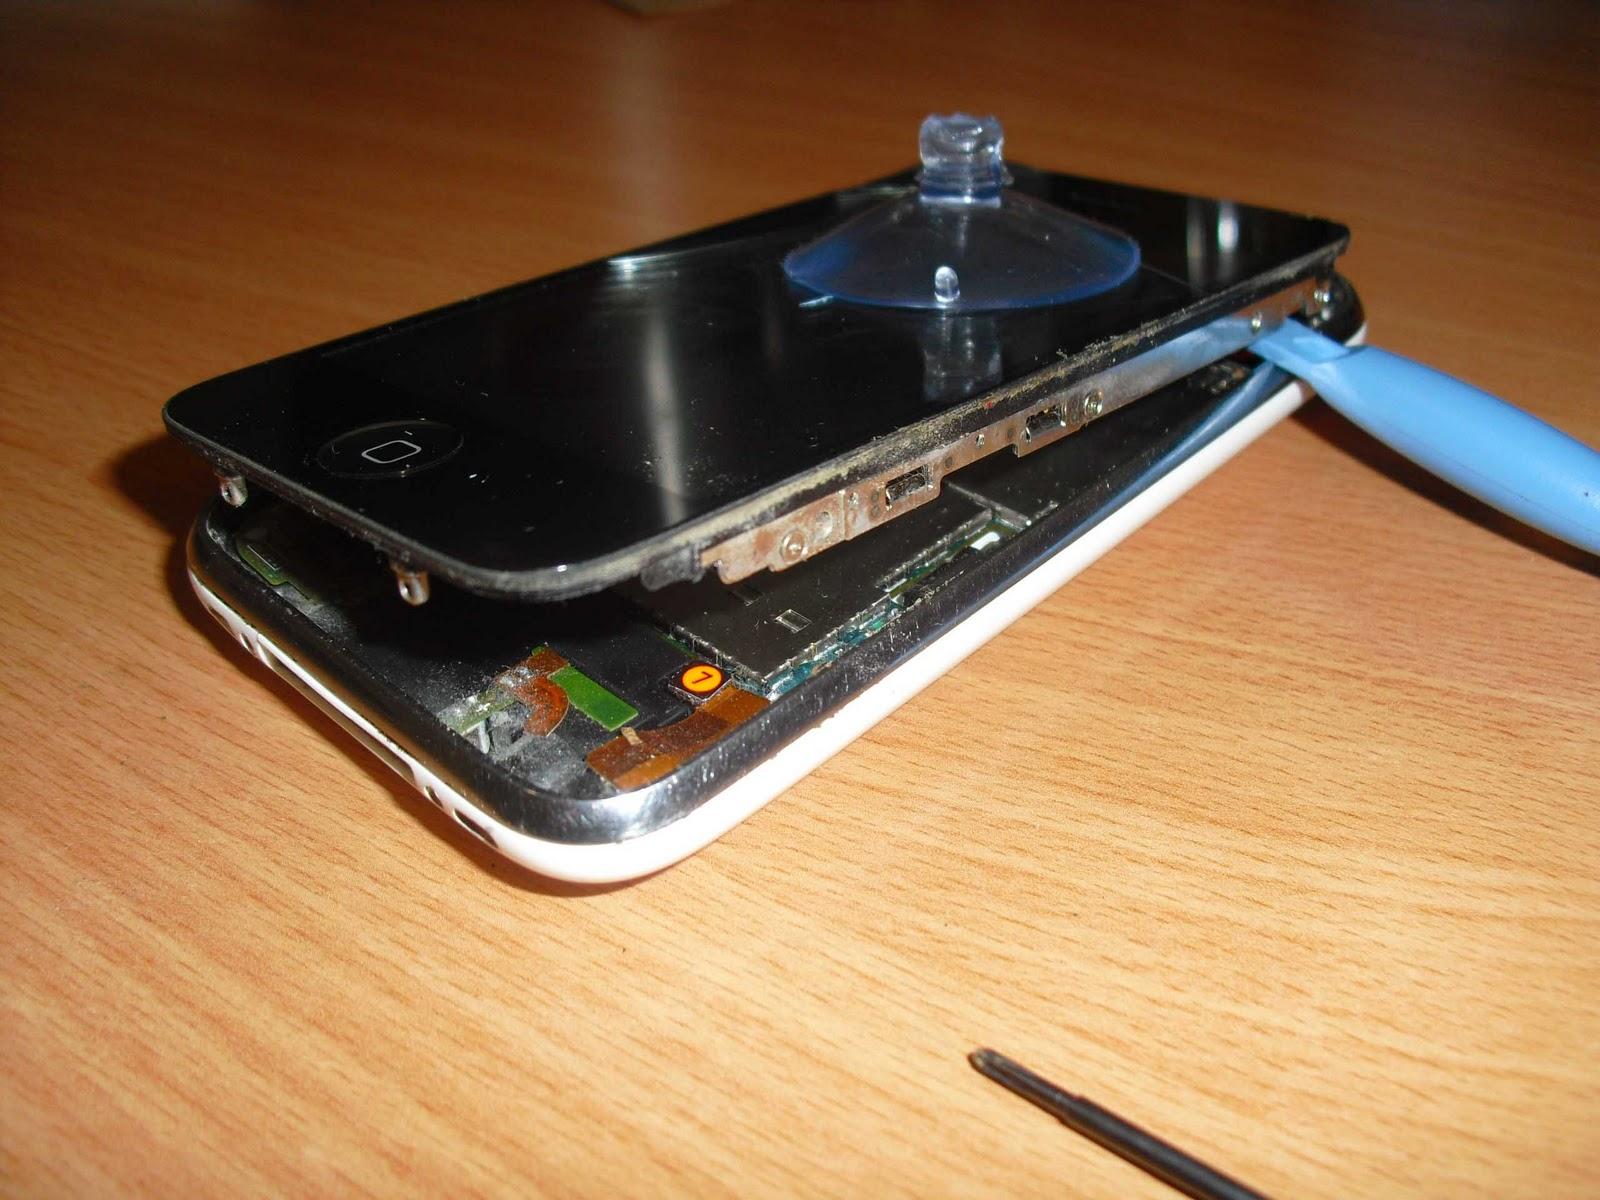 Reparar Iphone Gs